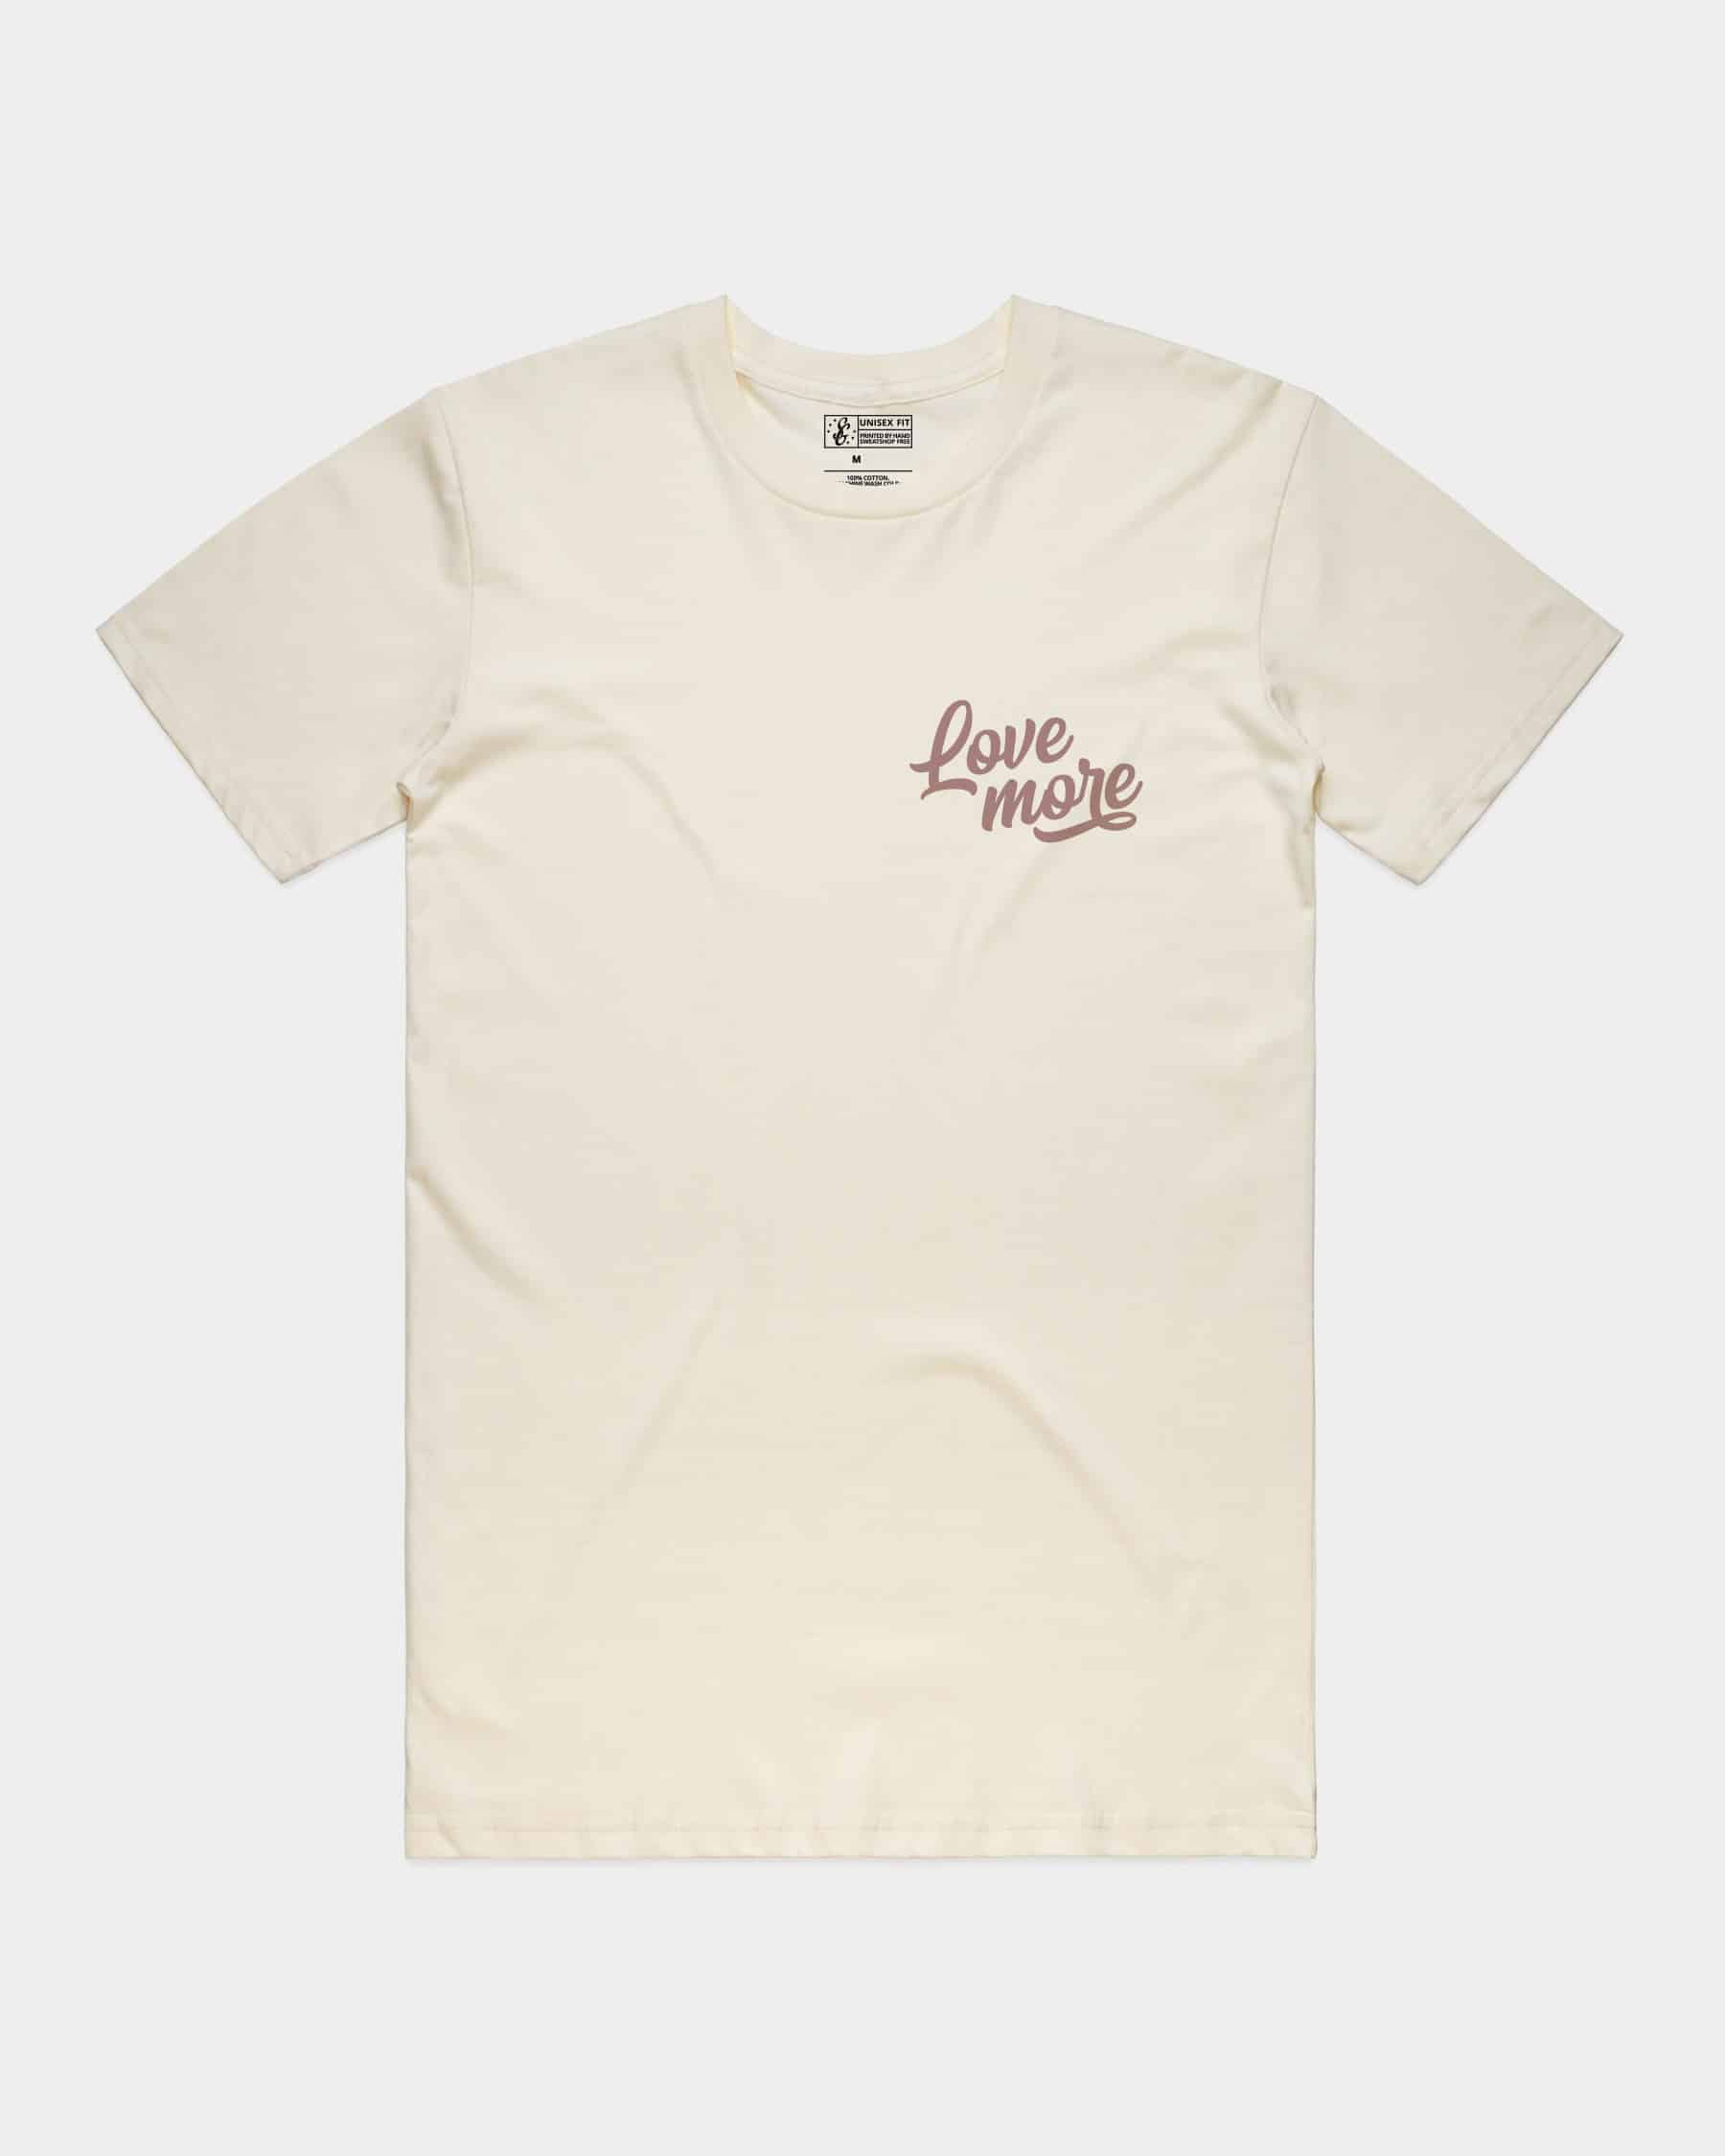 Natural cotton tee shirt with Love More hand printed in faded mauve ink on the front chest